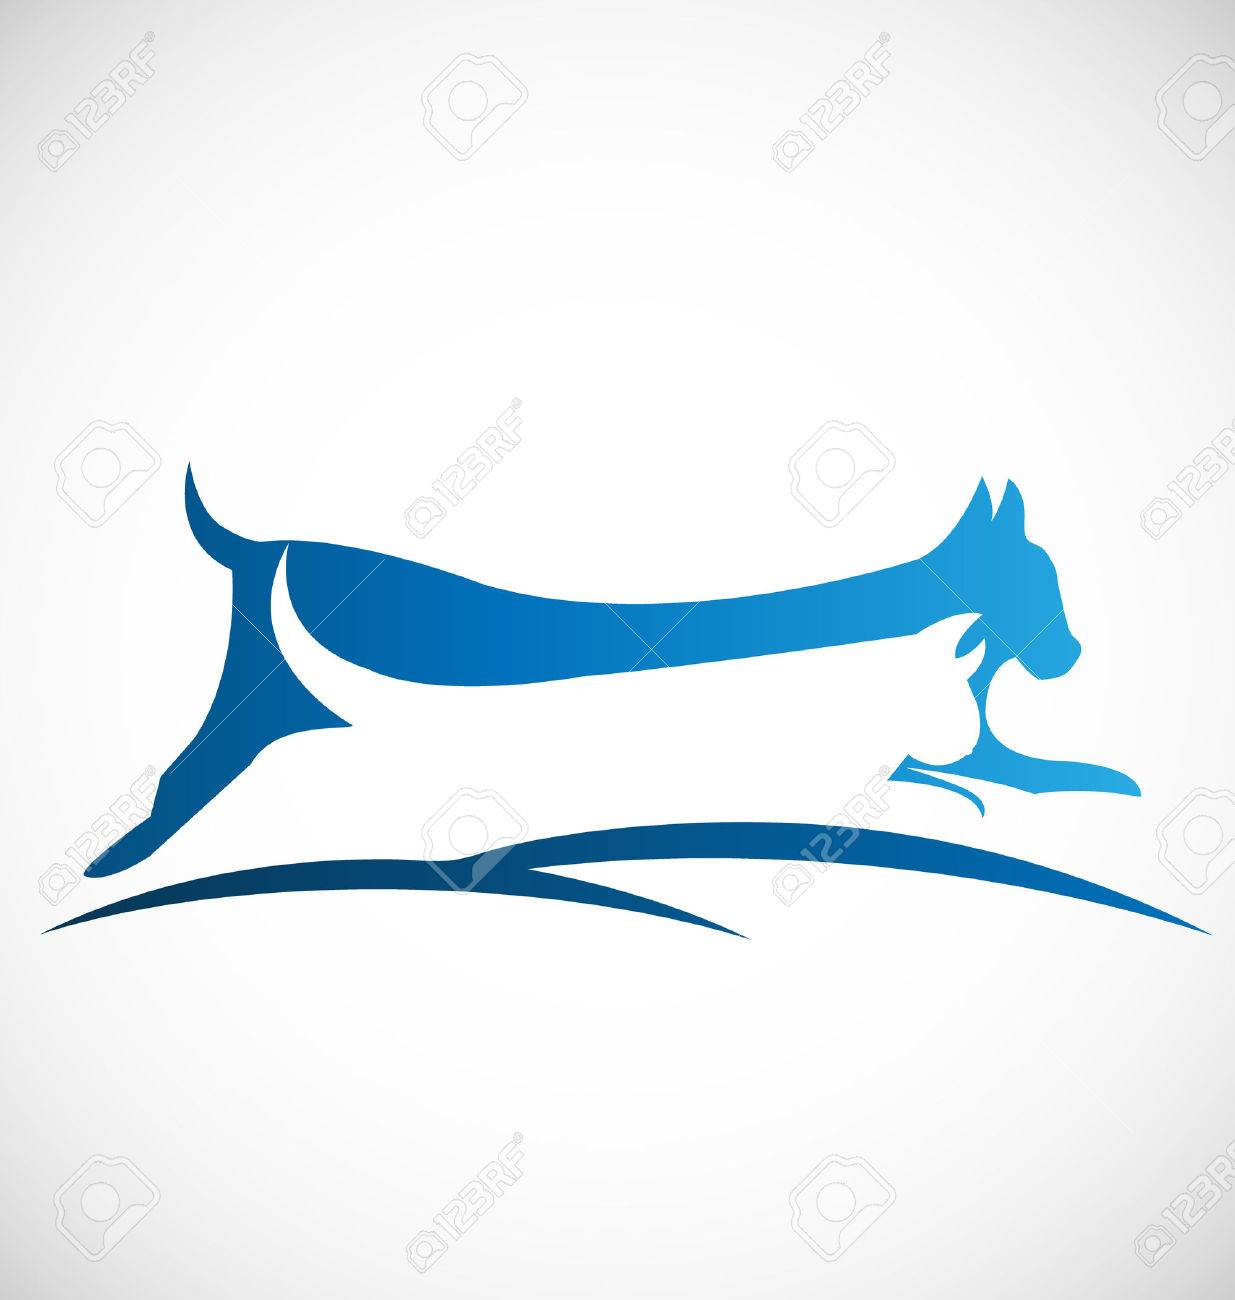 Vector of cat and dog icon design Stock Vector - 23200280